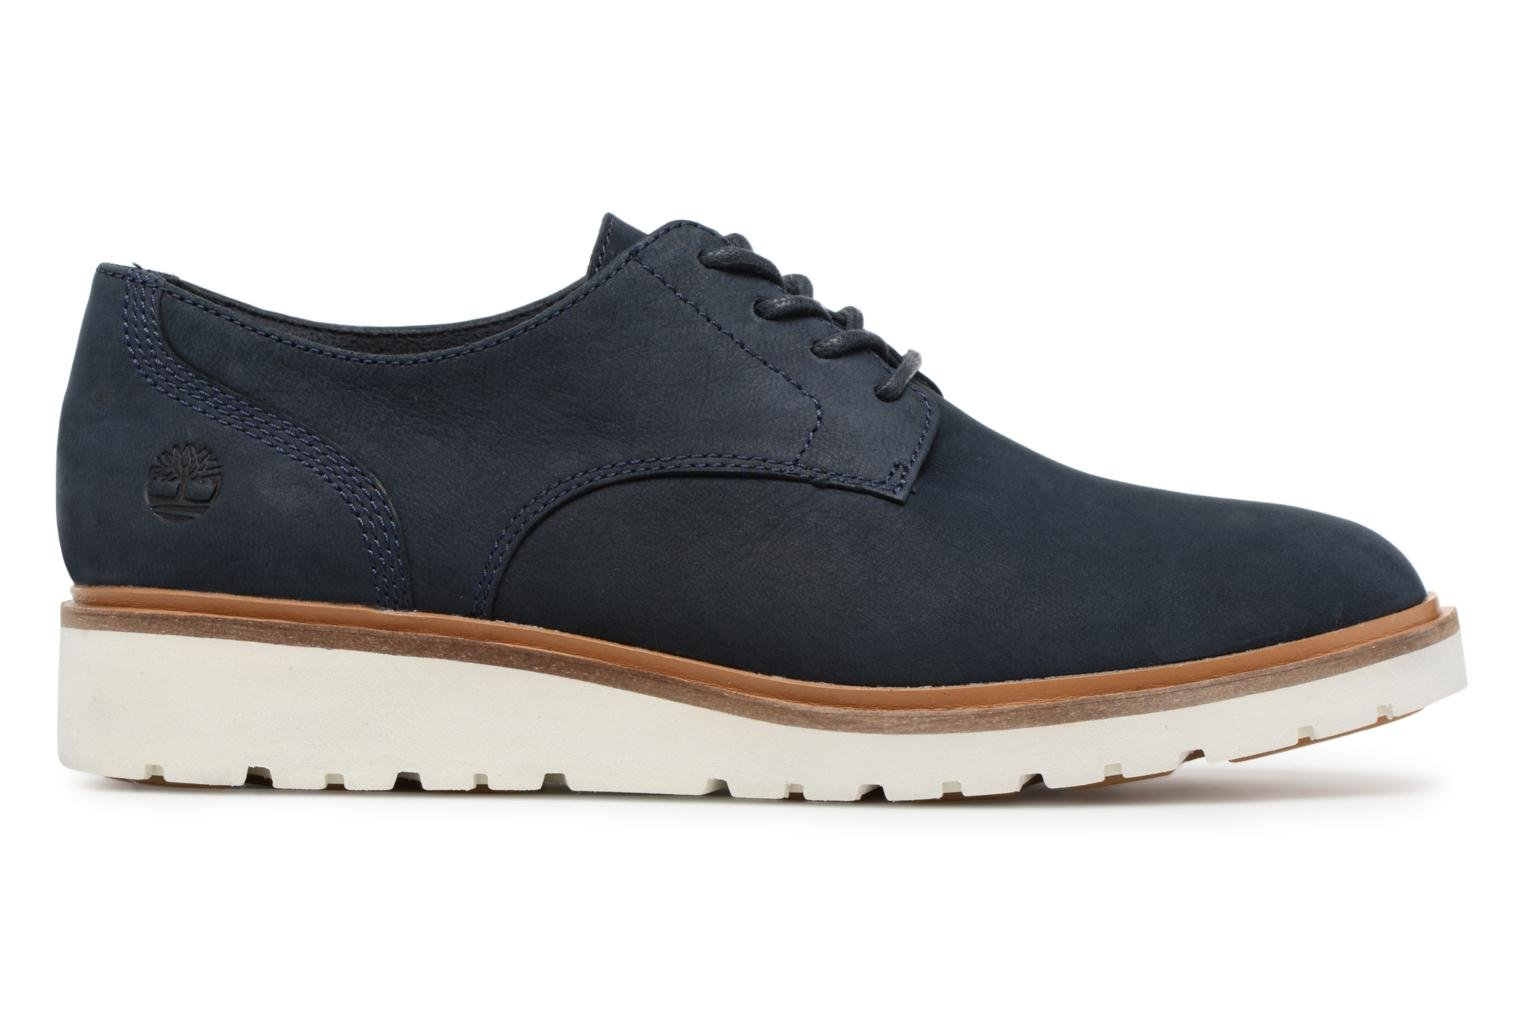 Timberland Ellis Street Lace Up